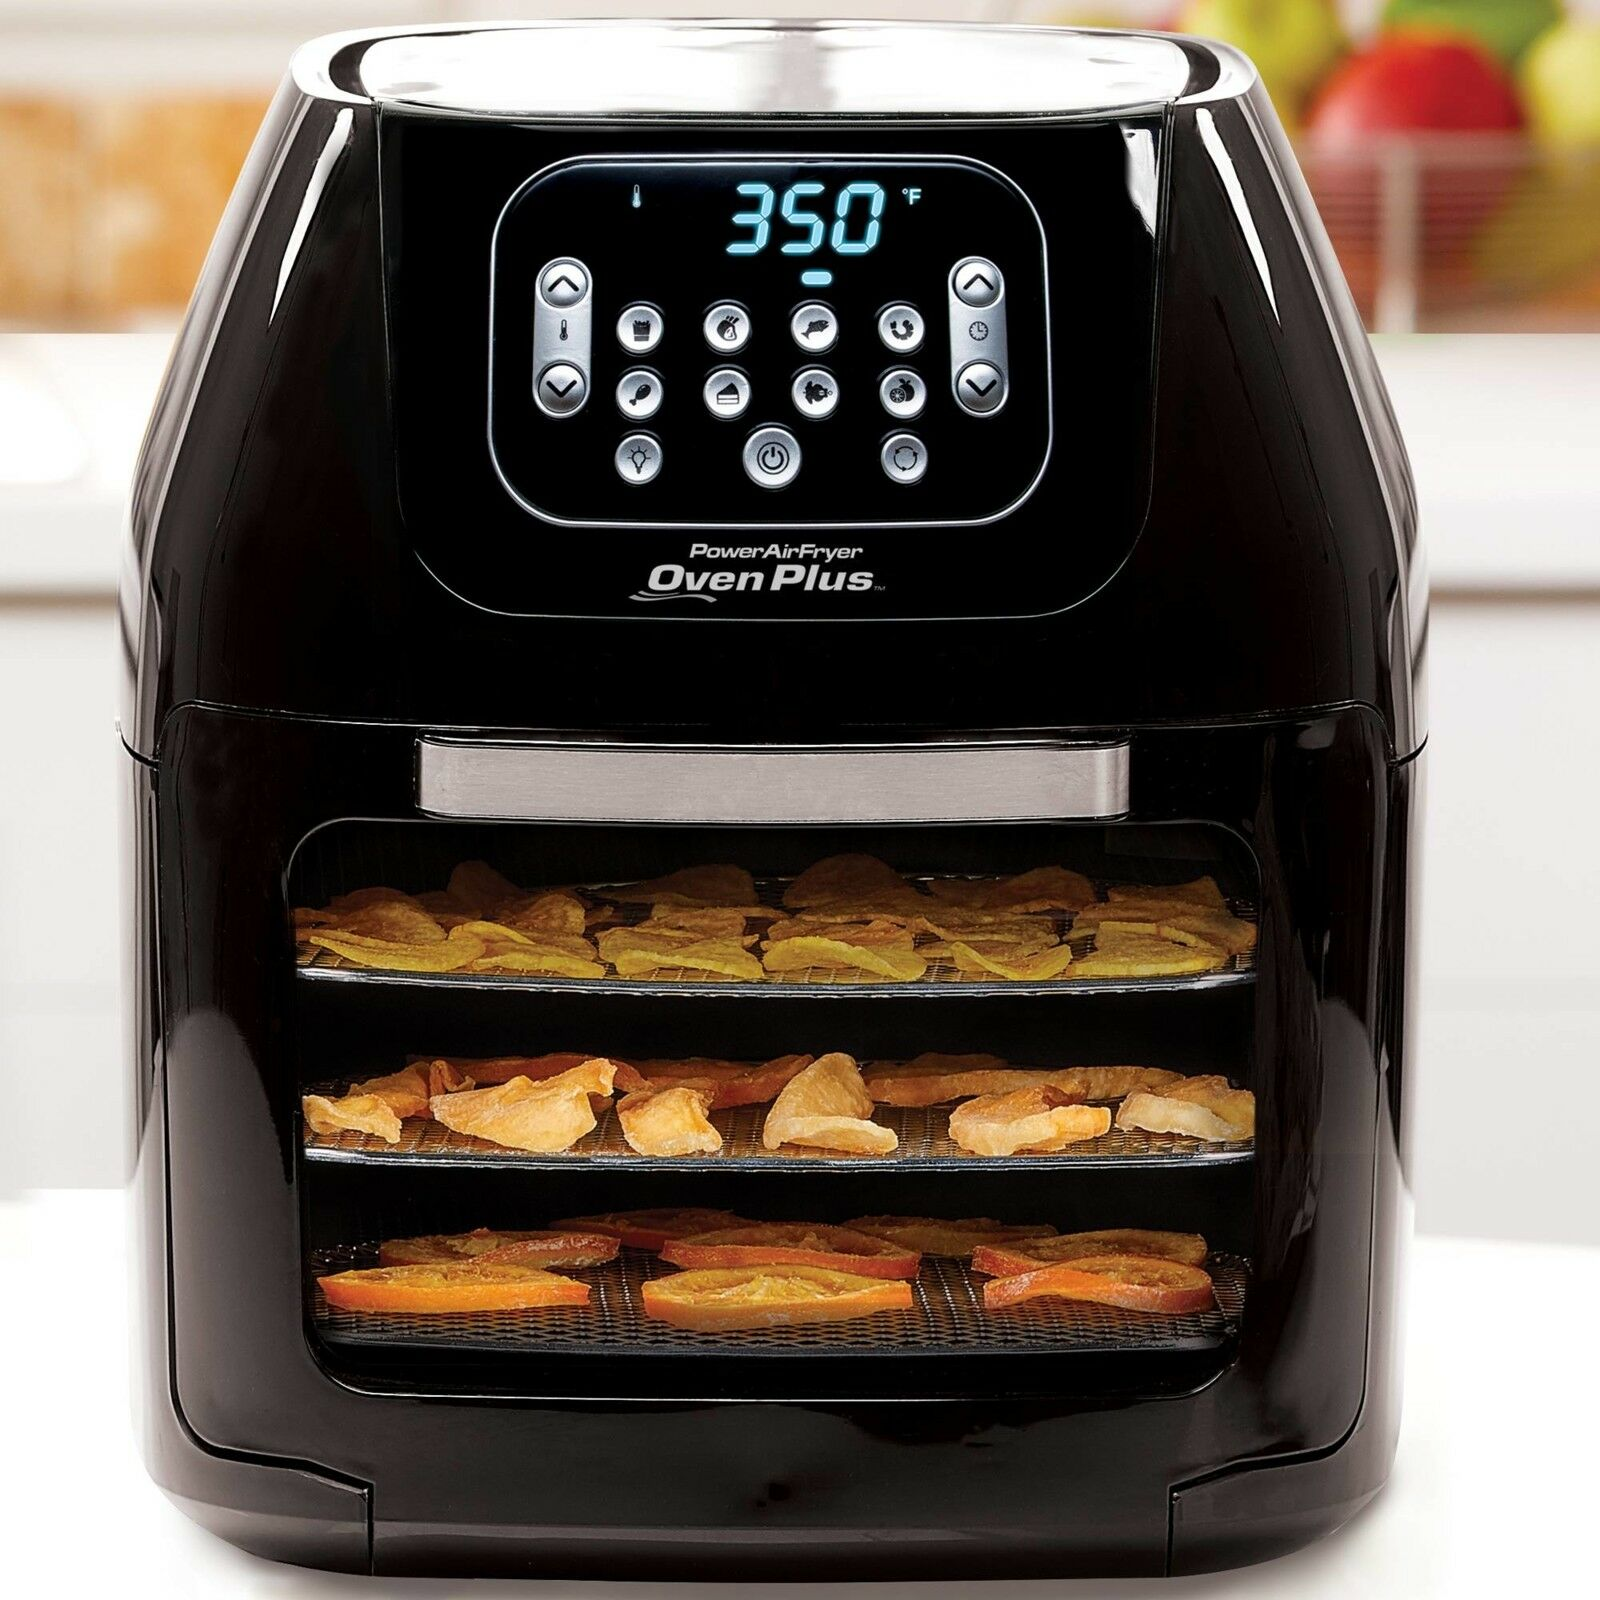 Power Air Fryer Oven All-in-One 6 Quart Plus Dehydrator Best Pro rougeisserie 6QT